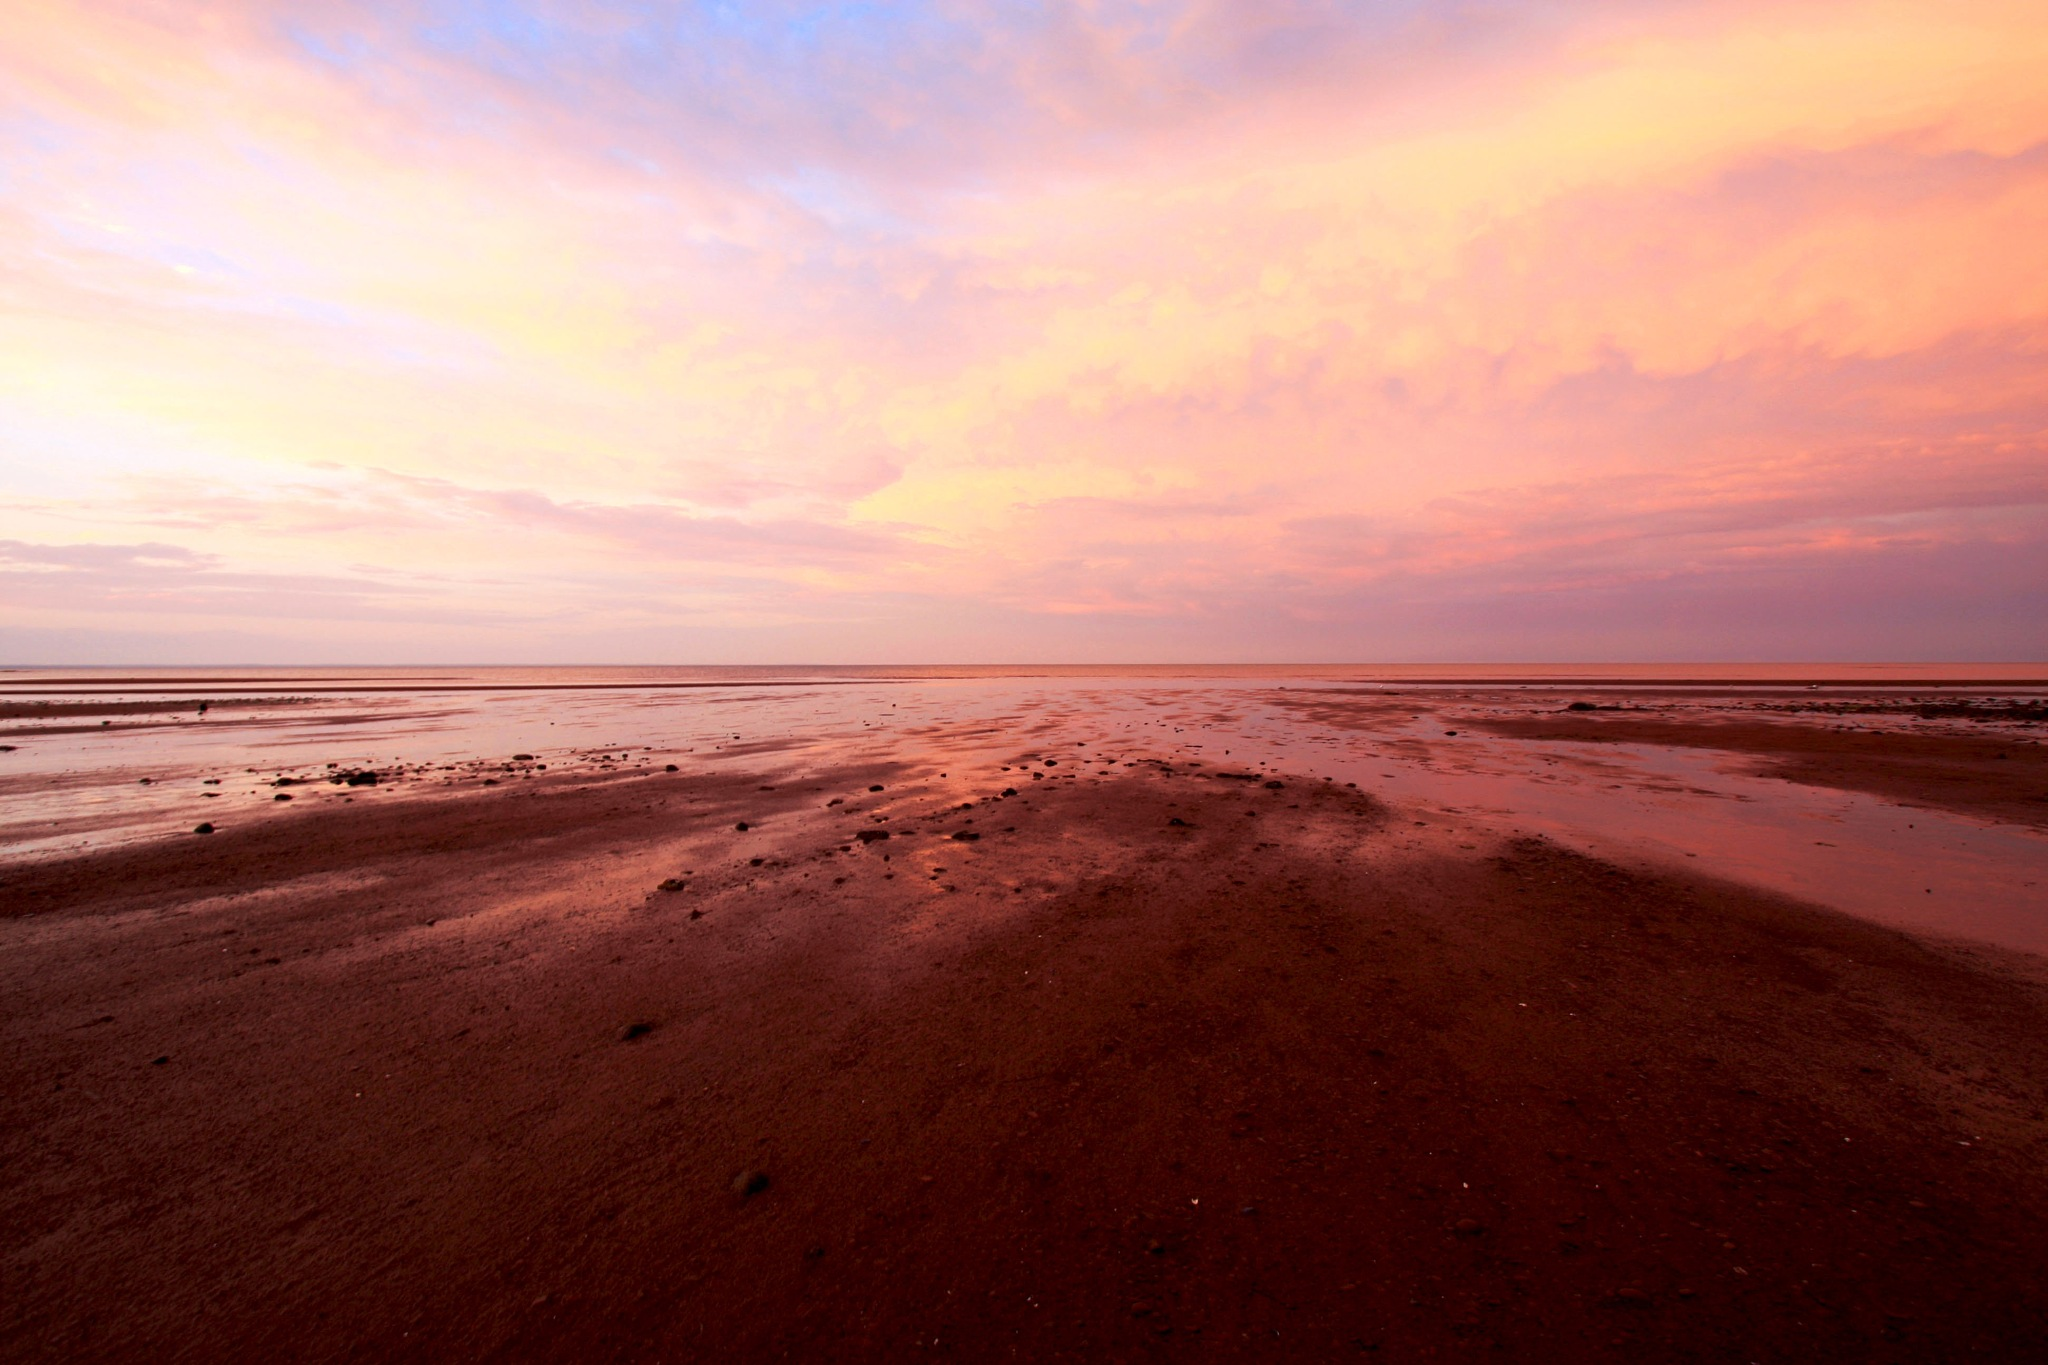 Red Sand Beach at Sunset by Wendy Farrington